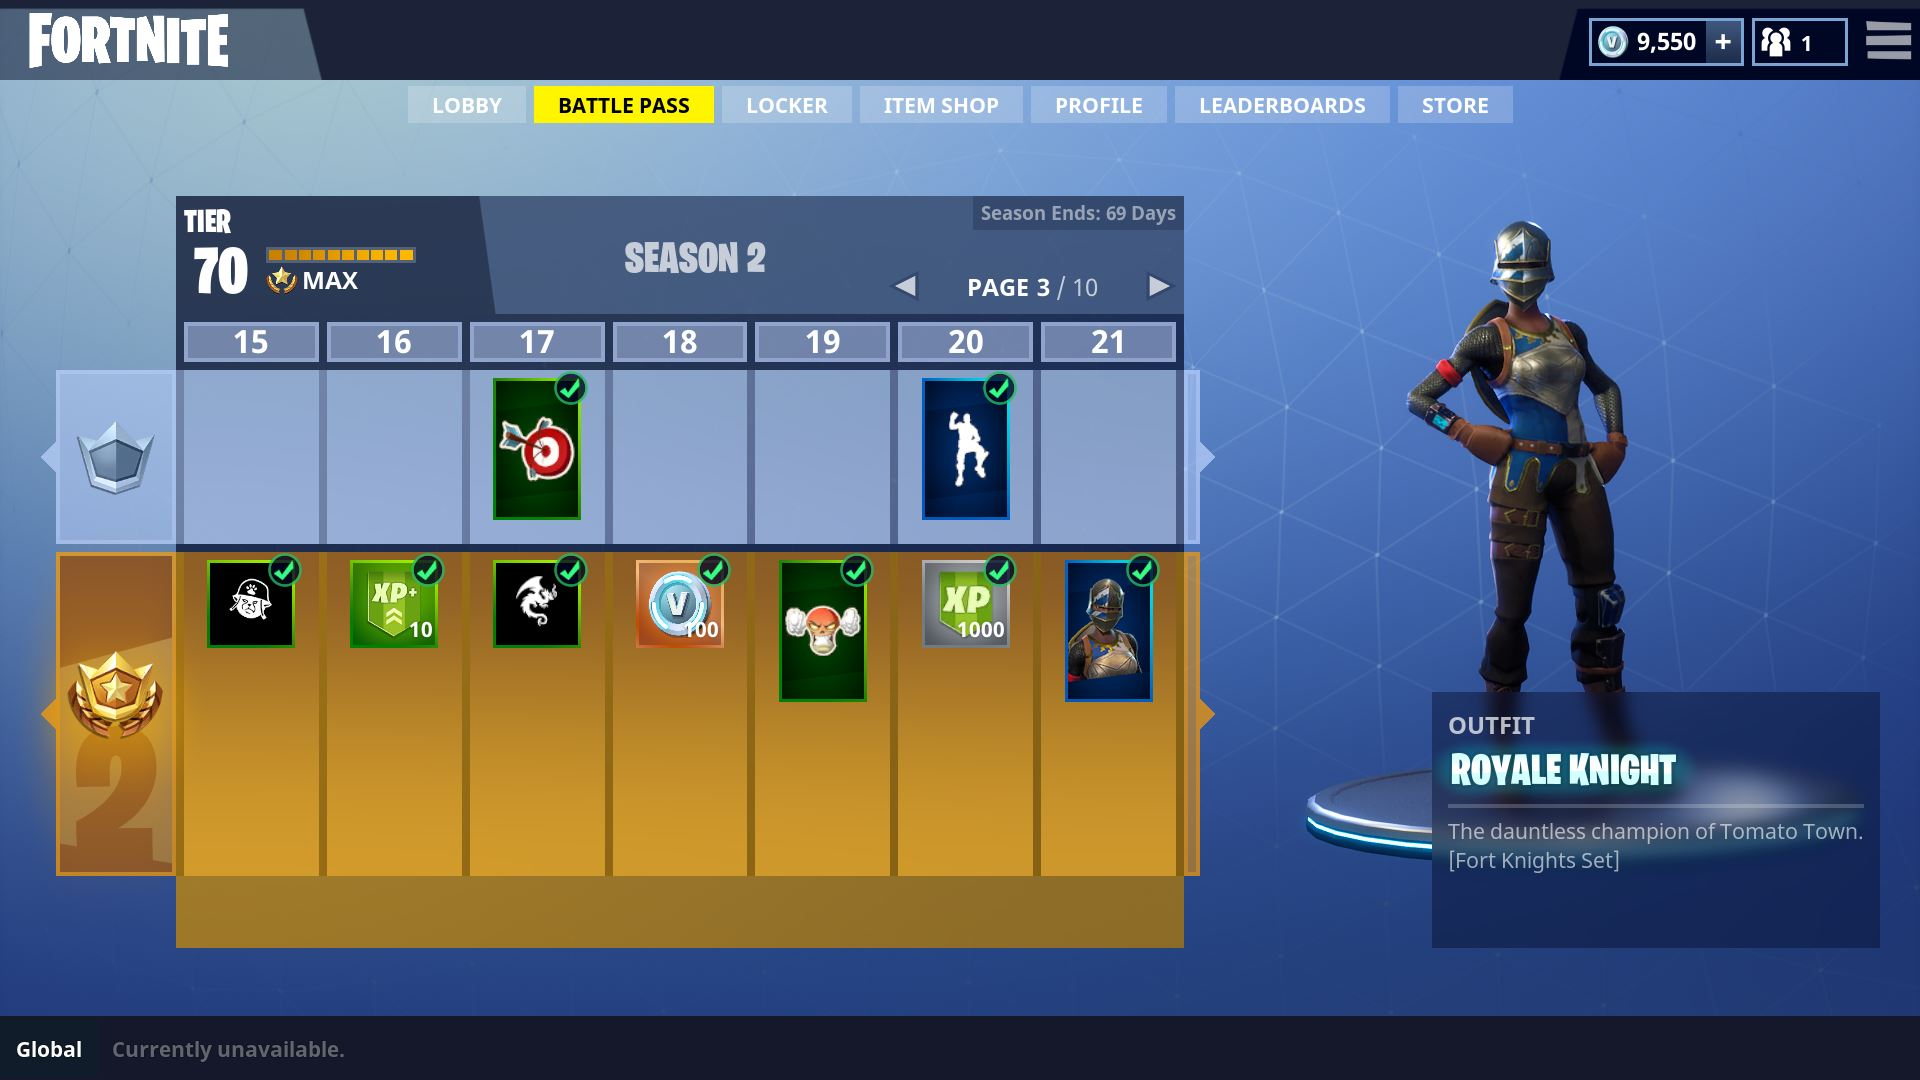 Fortnite 2 4 0 Update Offers Free Unlocks For Recent Party Issues